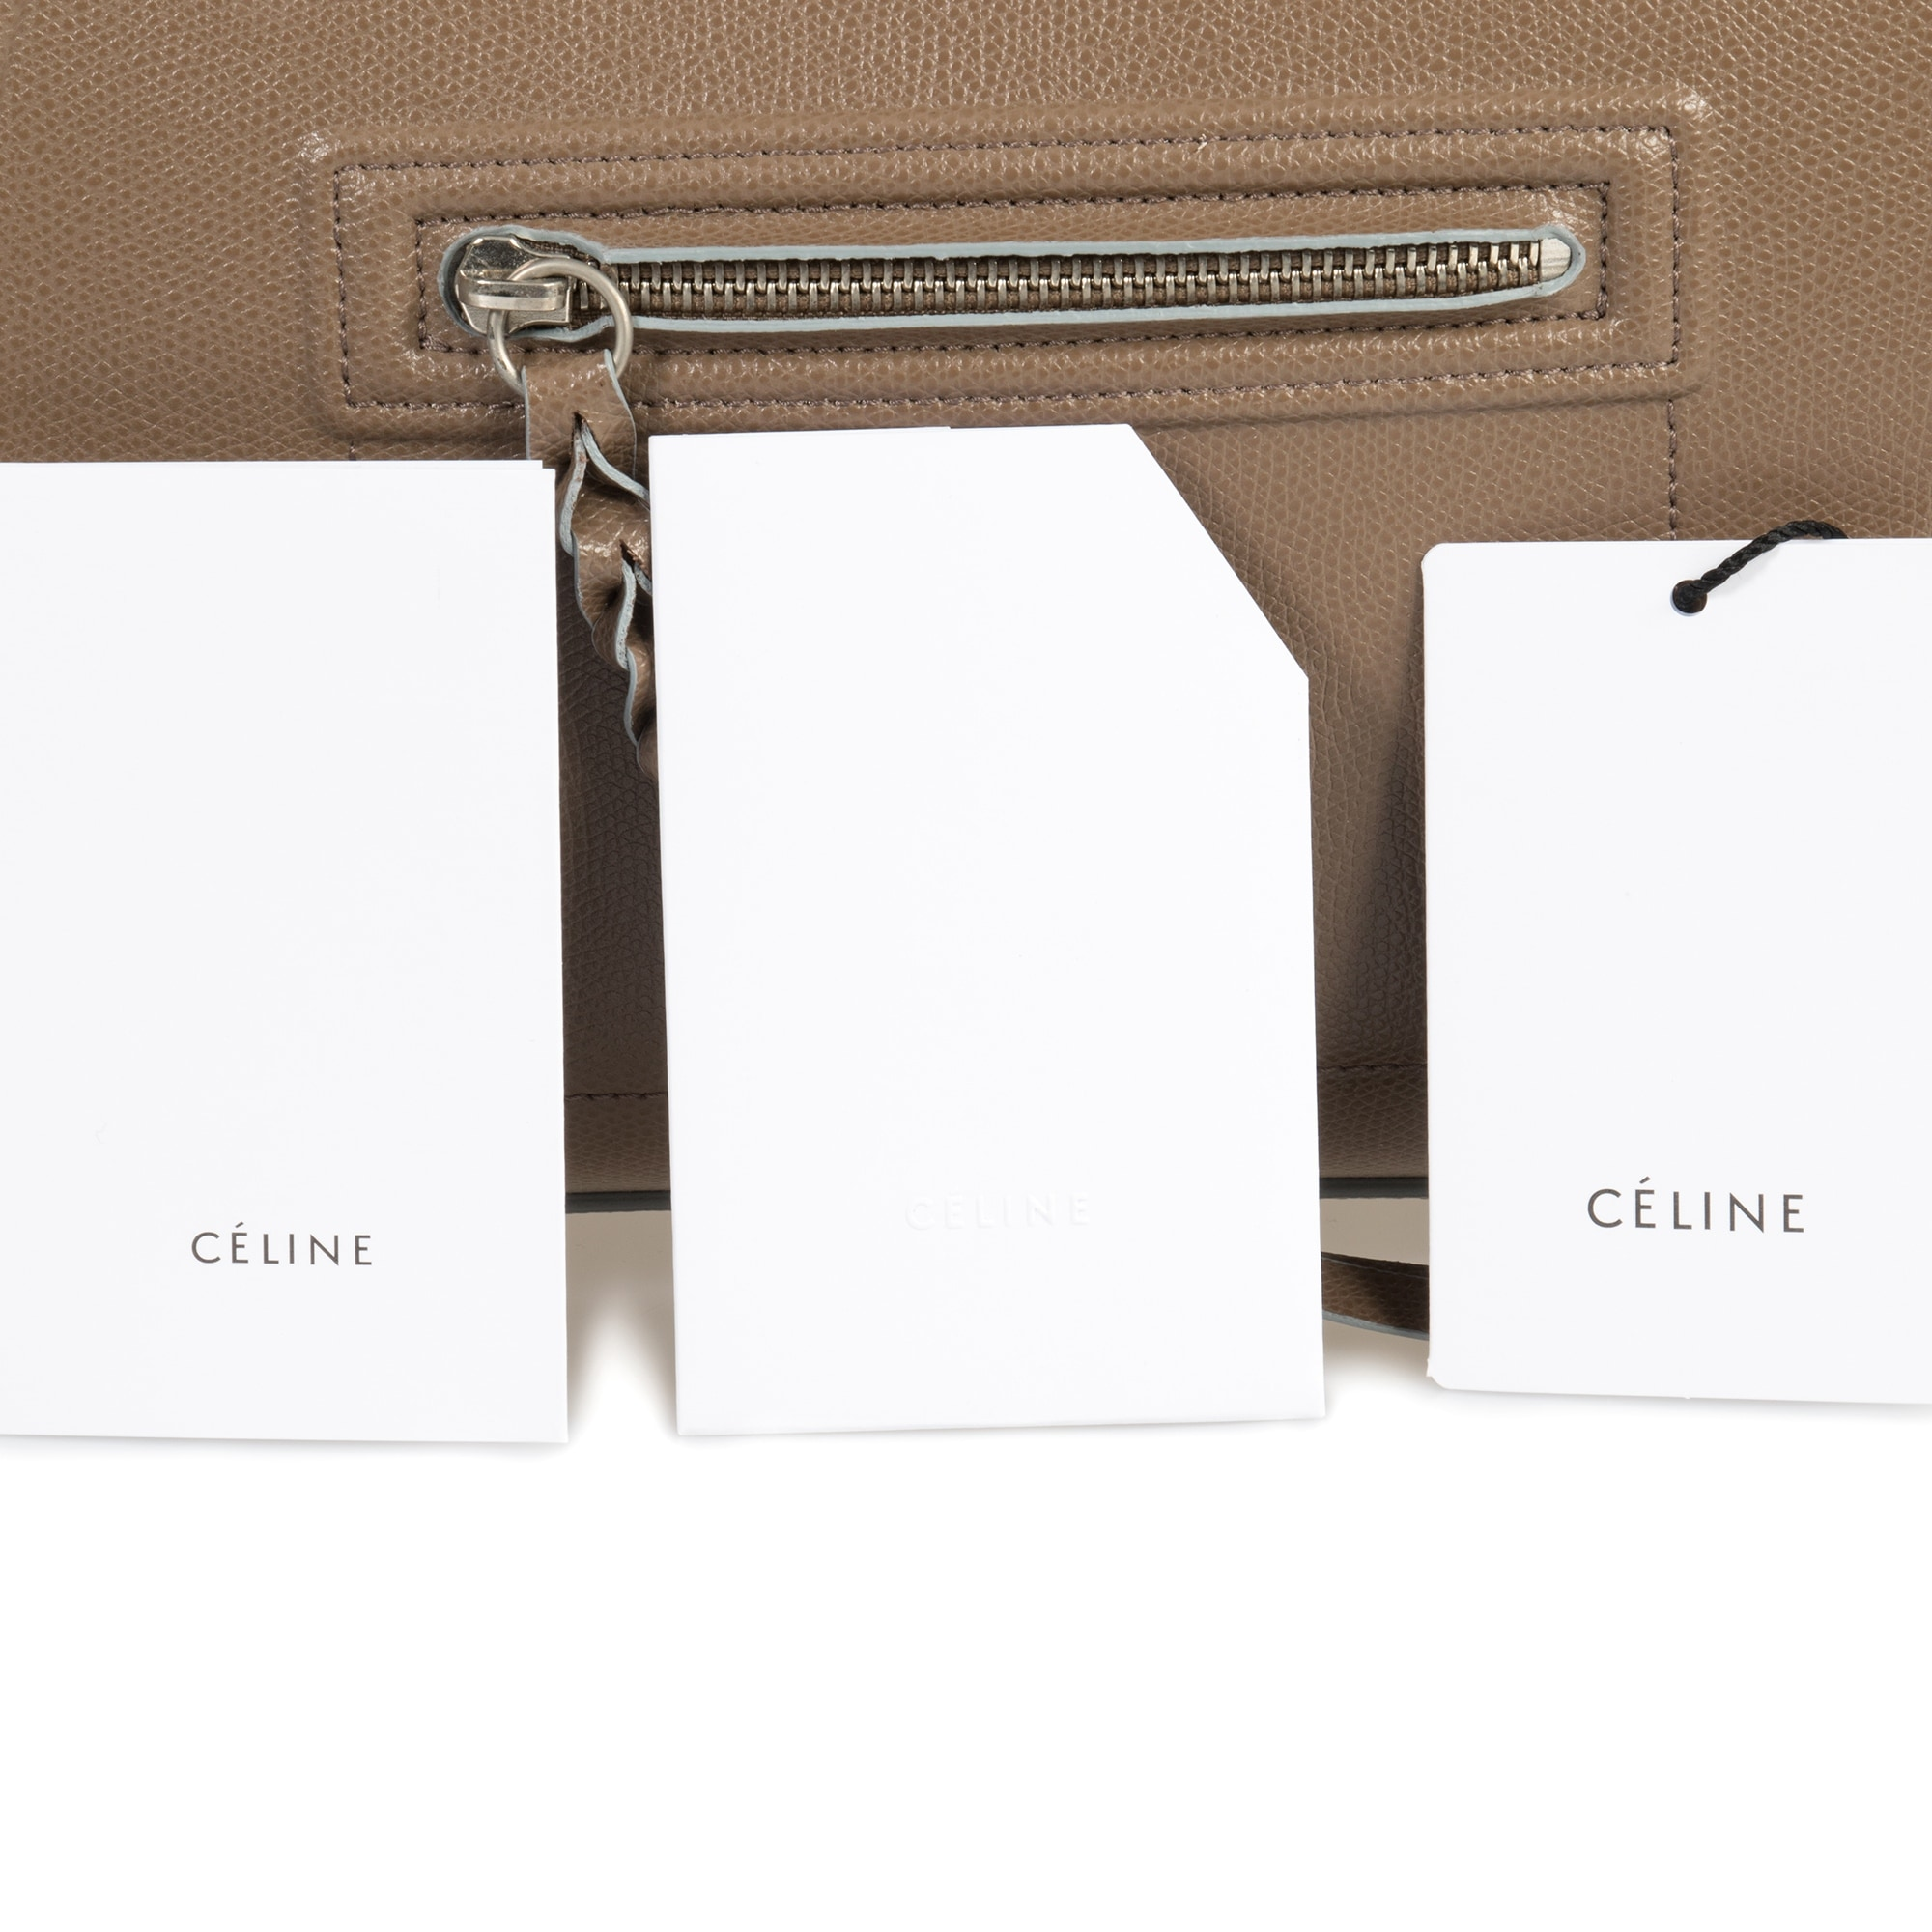 b286383929c0 Shop Celine Medium Luggage Phantom Bag In Taupe Baby Grained Calfskin  Leather - Free Shipping Today - Overstock.com - 23079574